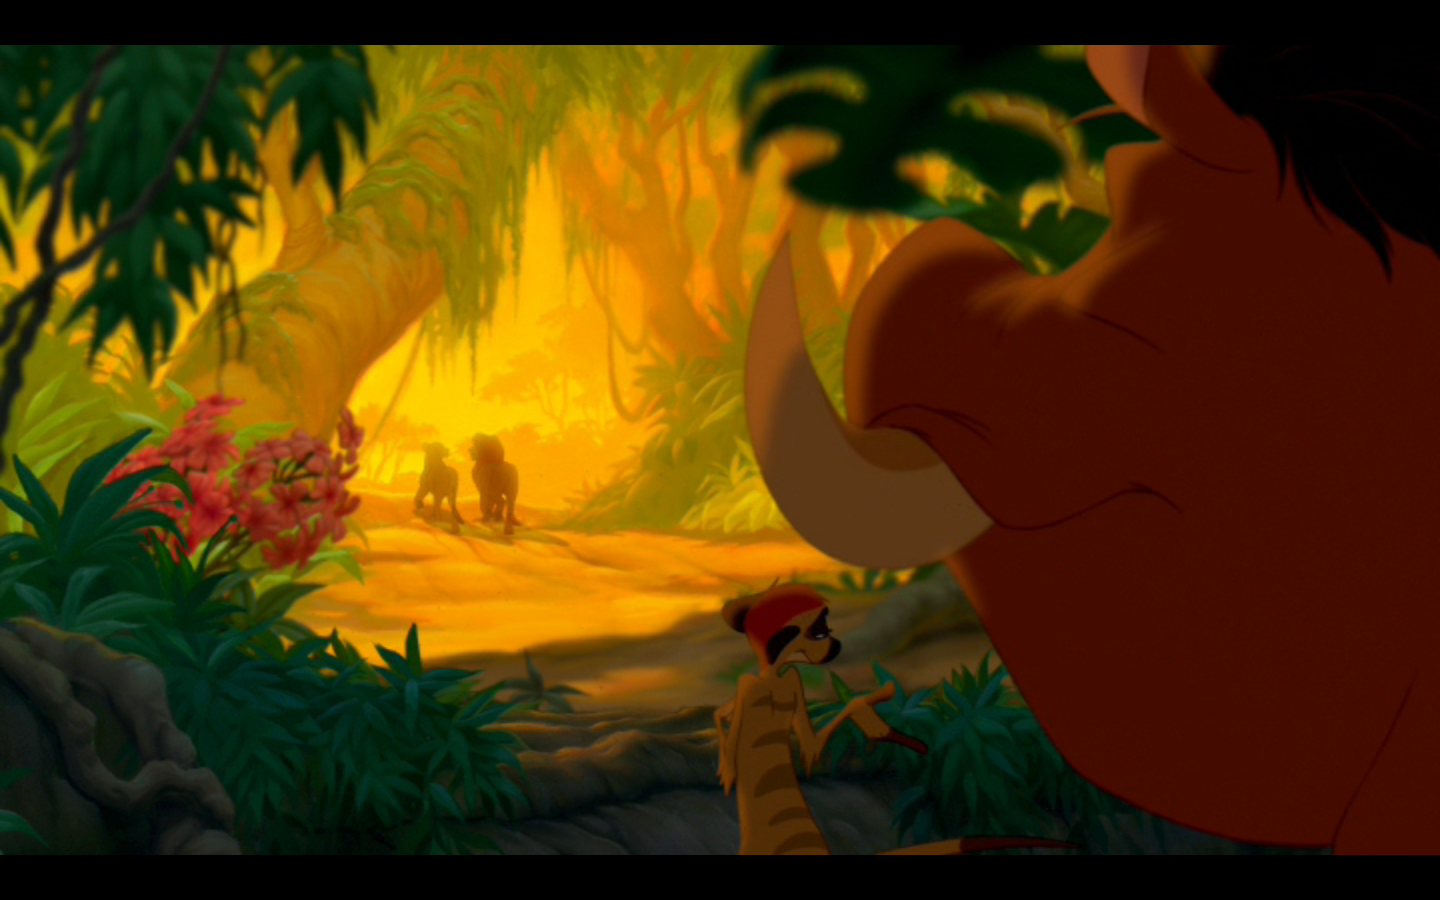 an analysis of the movie of lion king Immediately download the the lion king summary, chapter-by-chapter analysis, book notes, essays, quotes, character descriptions, lesson plans, and more - everything you need for studying or teaching the lion king.